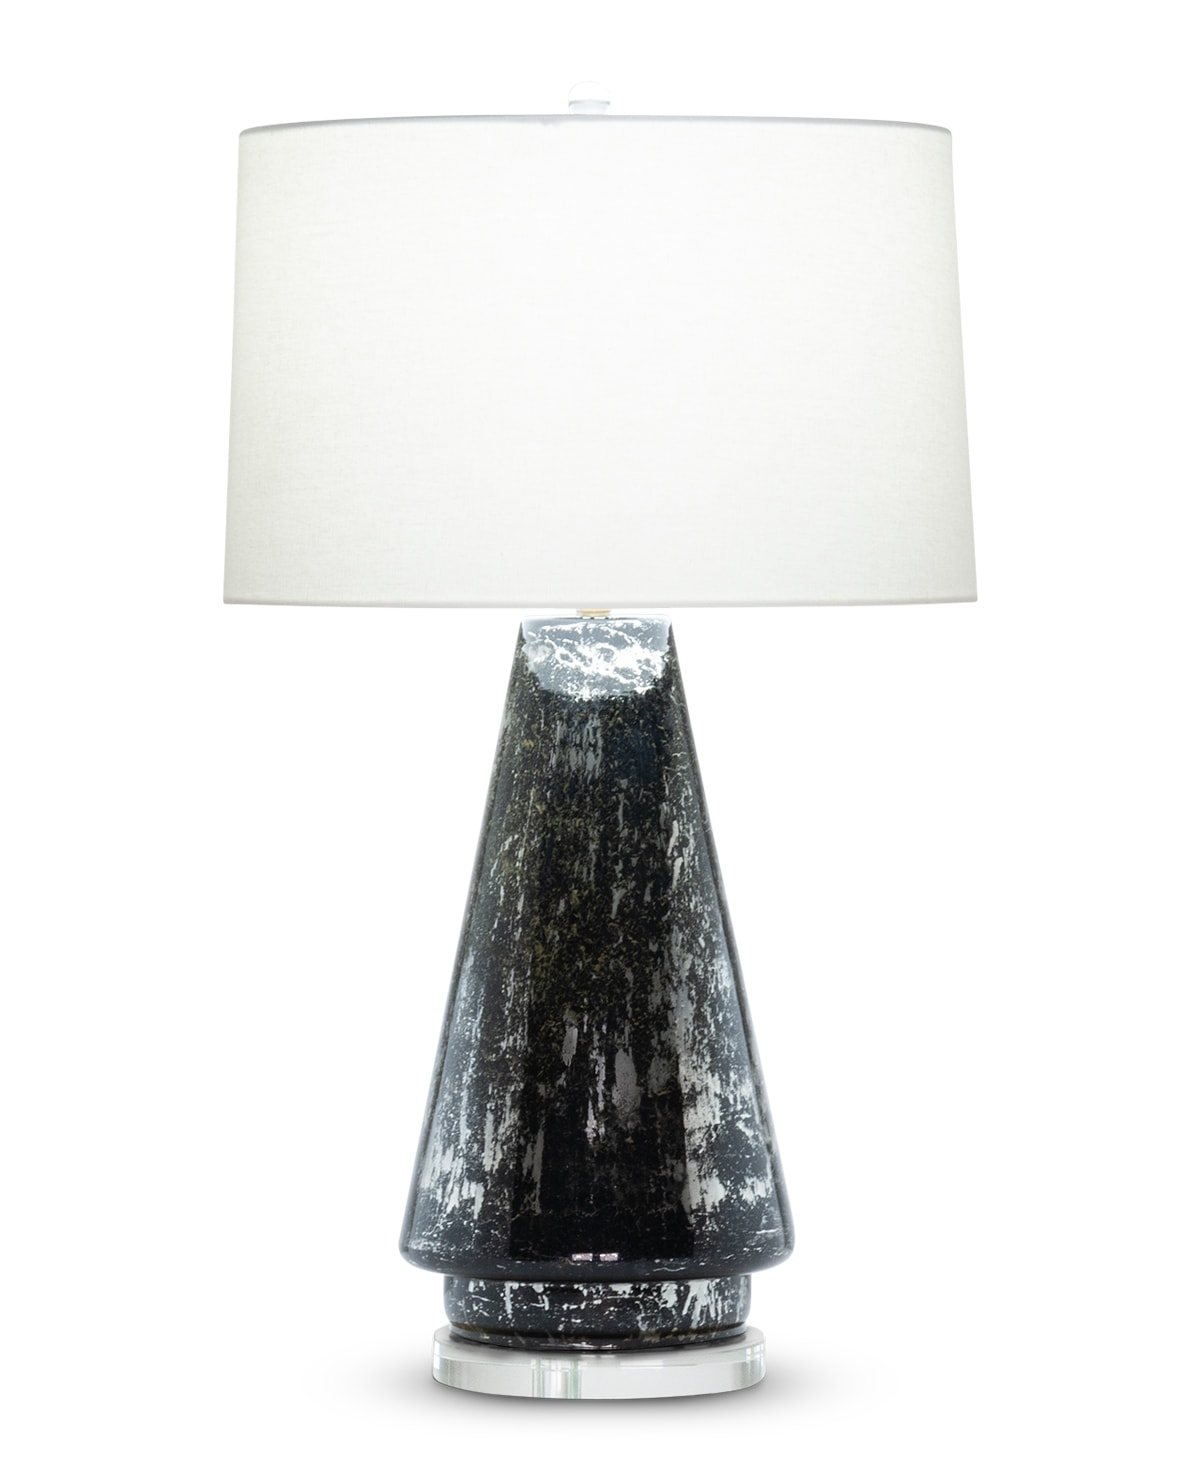 FlowDecor Morgan Table Lamp in mouth-blown glass with black and silver finish and acrylic base and off-white linen tapered drum shade (# 4513)